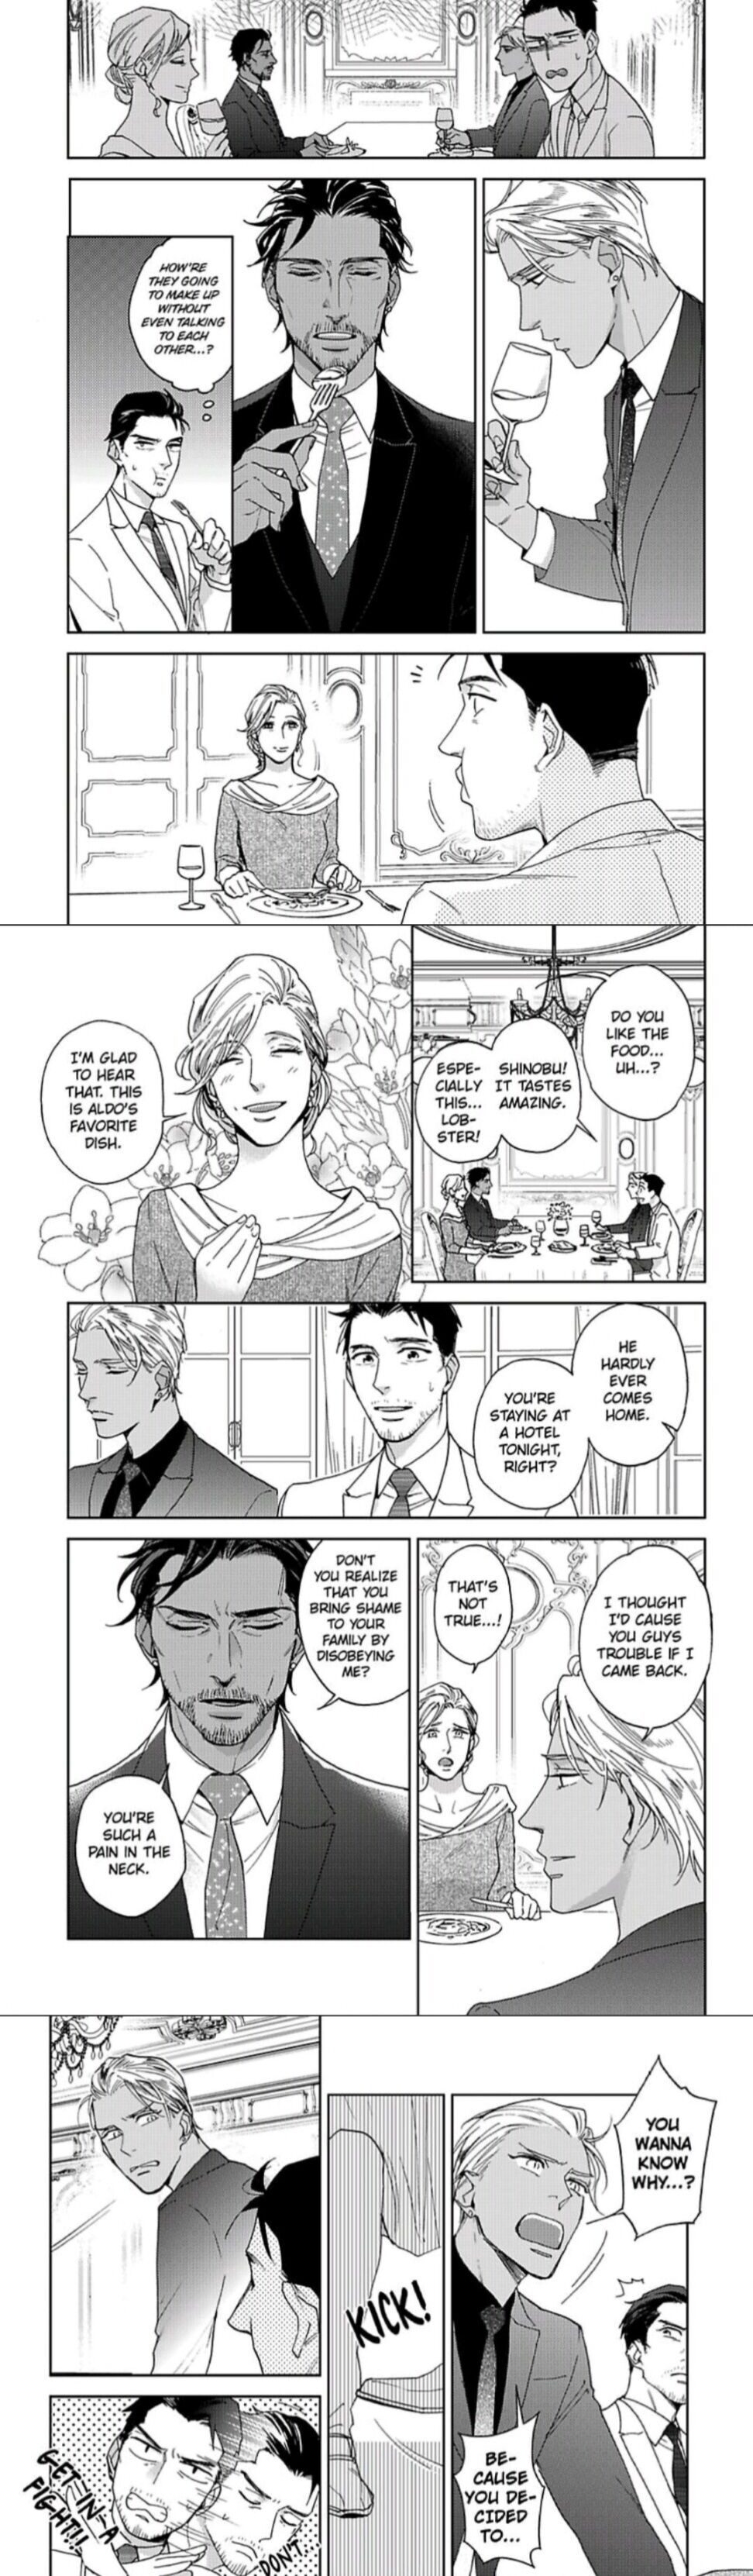 My Hopeless Dreamer - chapter 5 - #3